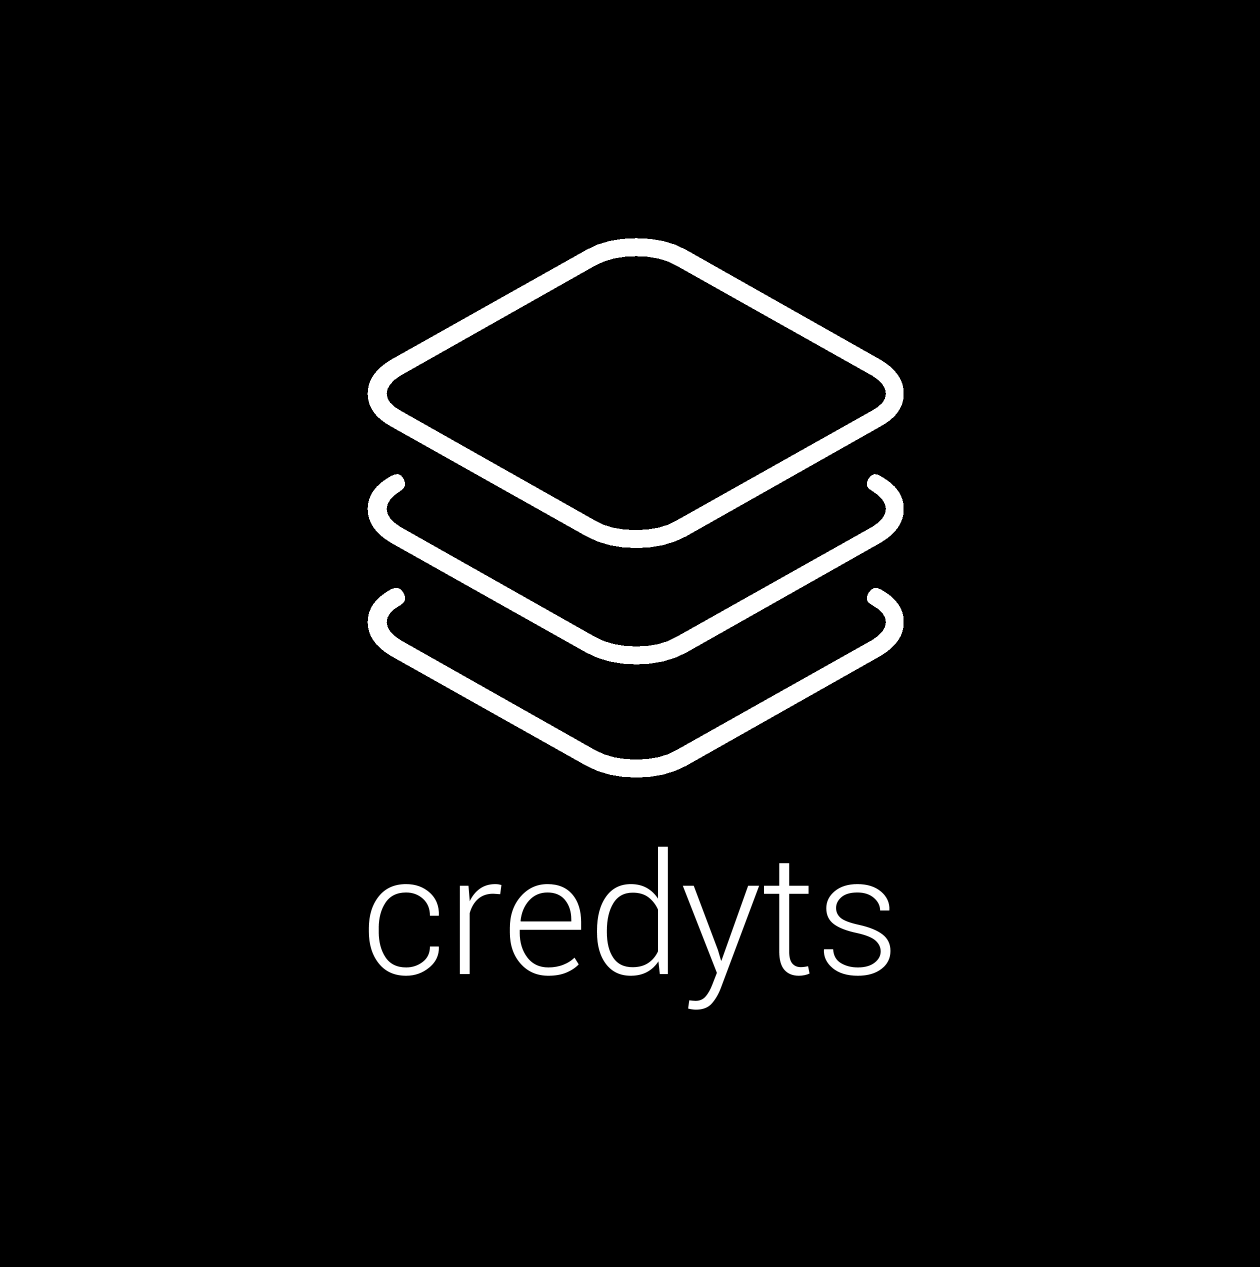 PiP iT Global - Who we work with - CredytsGold is a gold-backed digital currency that's safe, stable and supported by an open network of partners, enabling anyone to reap the benefits of gold and take ownership of their wealth.